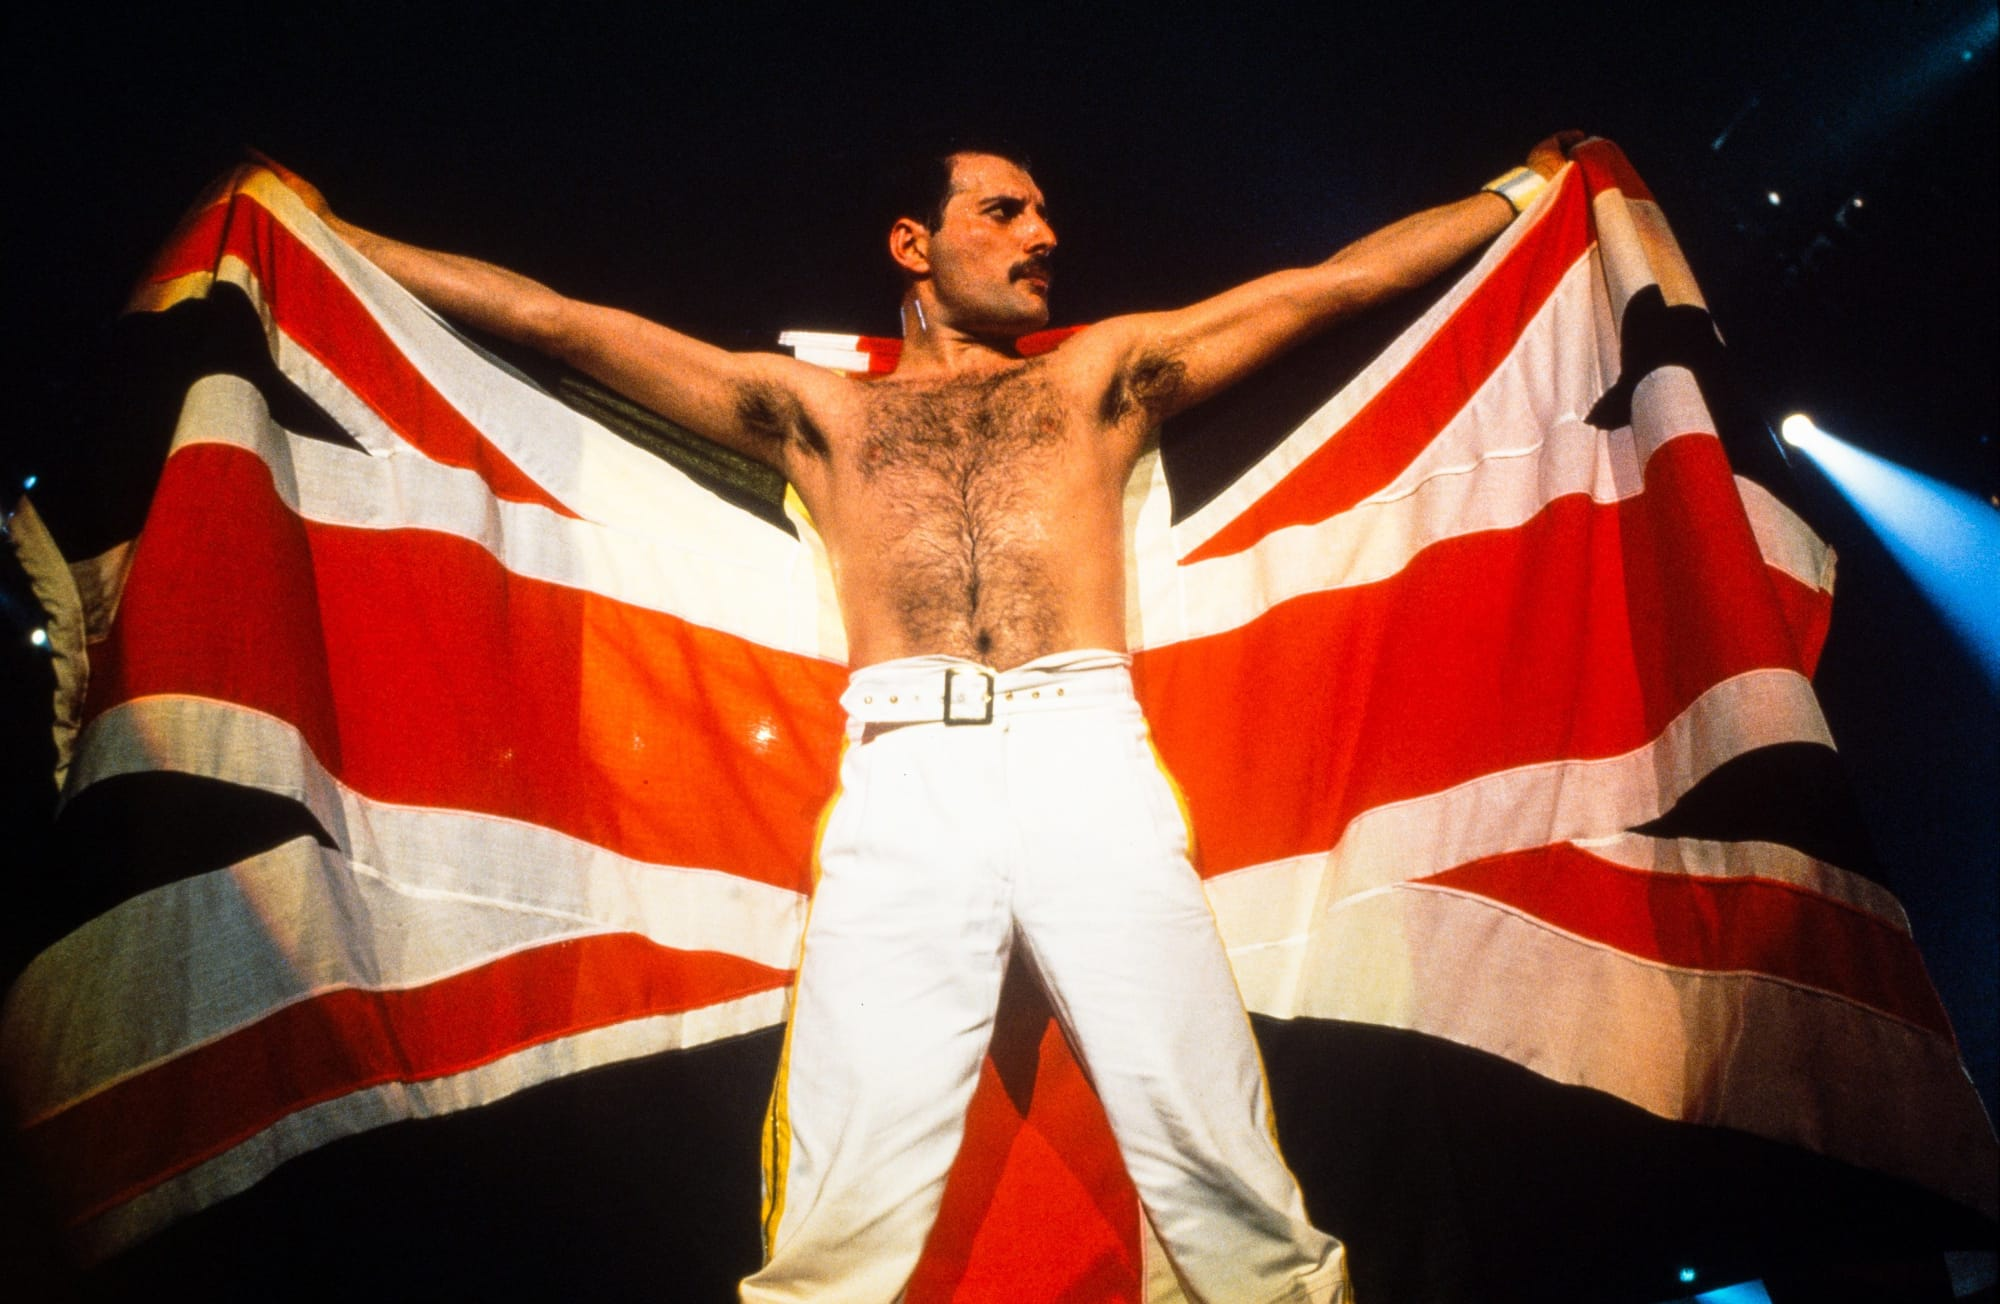 9_queen-plays-knebworth-the-last-concert-on-the-magic-tour-on-august-09-1986-in-knebworth-united-kingdom-photo-by-fg_bauer-griffin_getty-images-